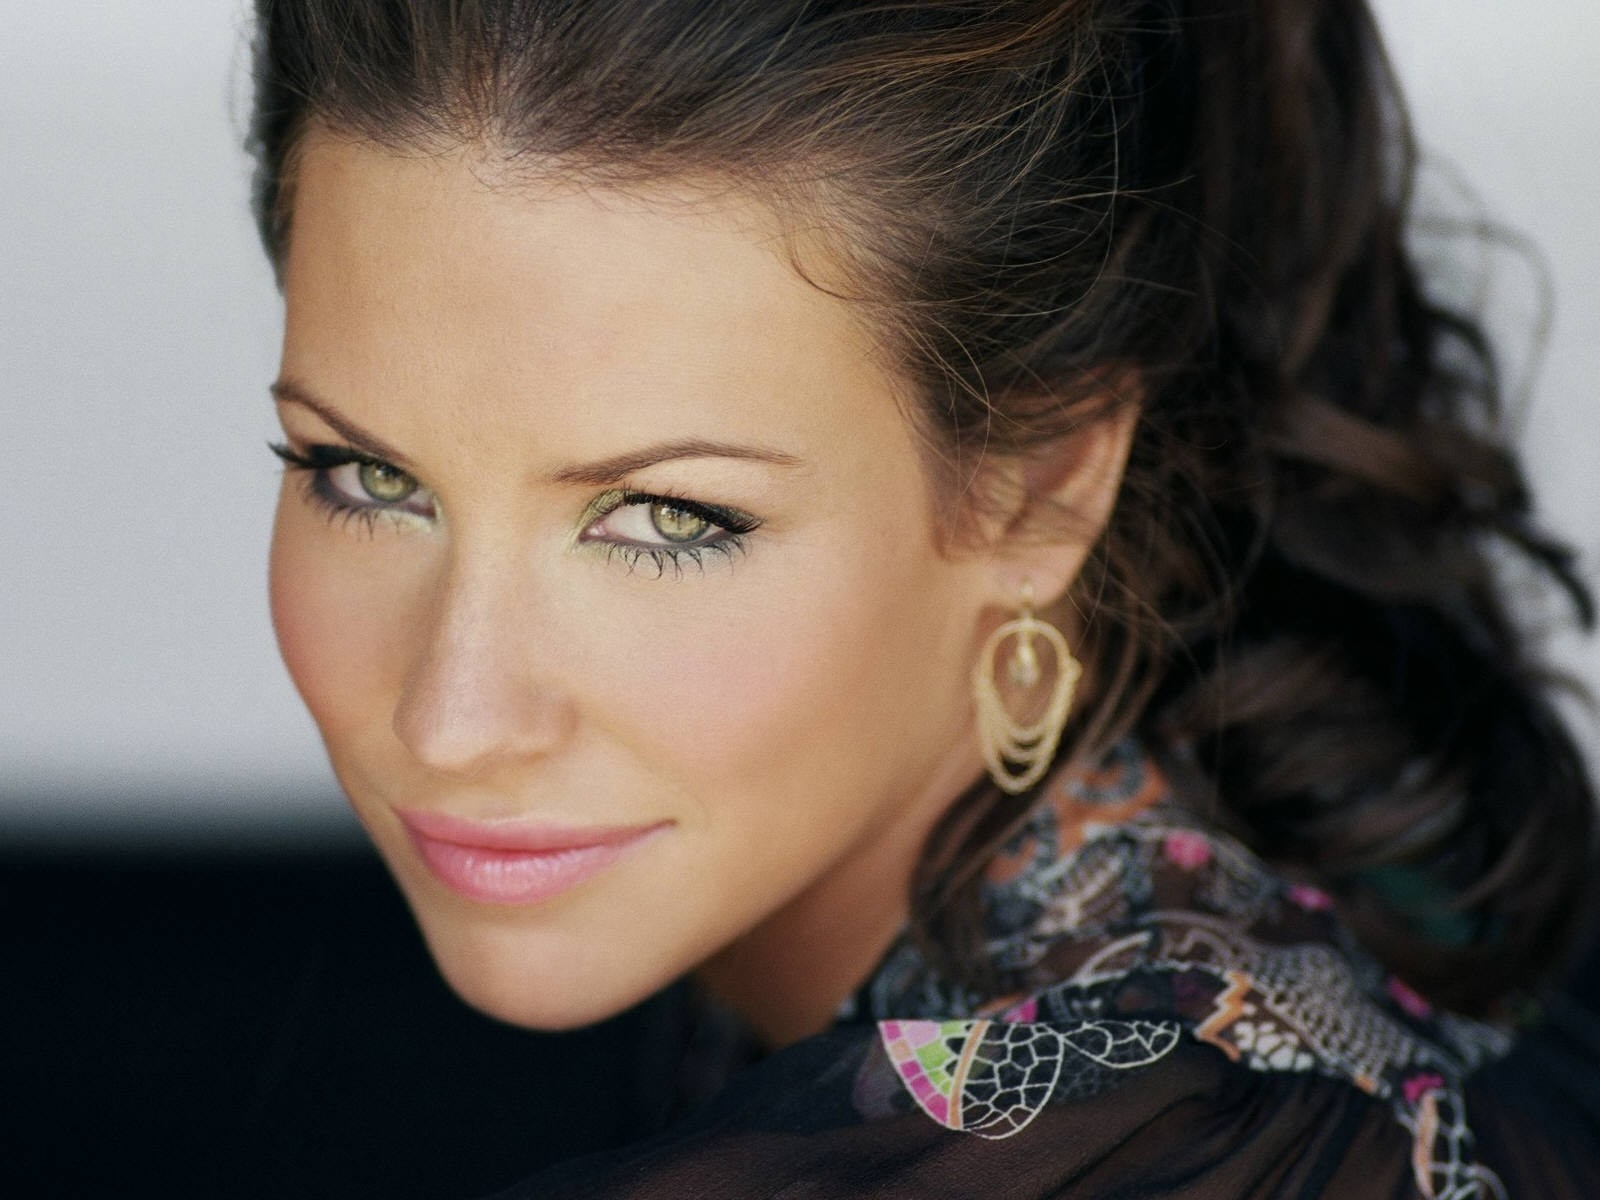 Wallpaper di Evangeline Lilly in versione glamour